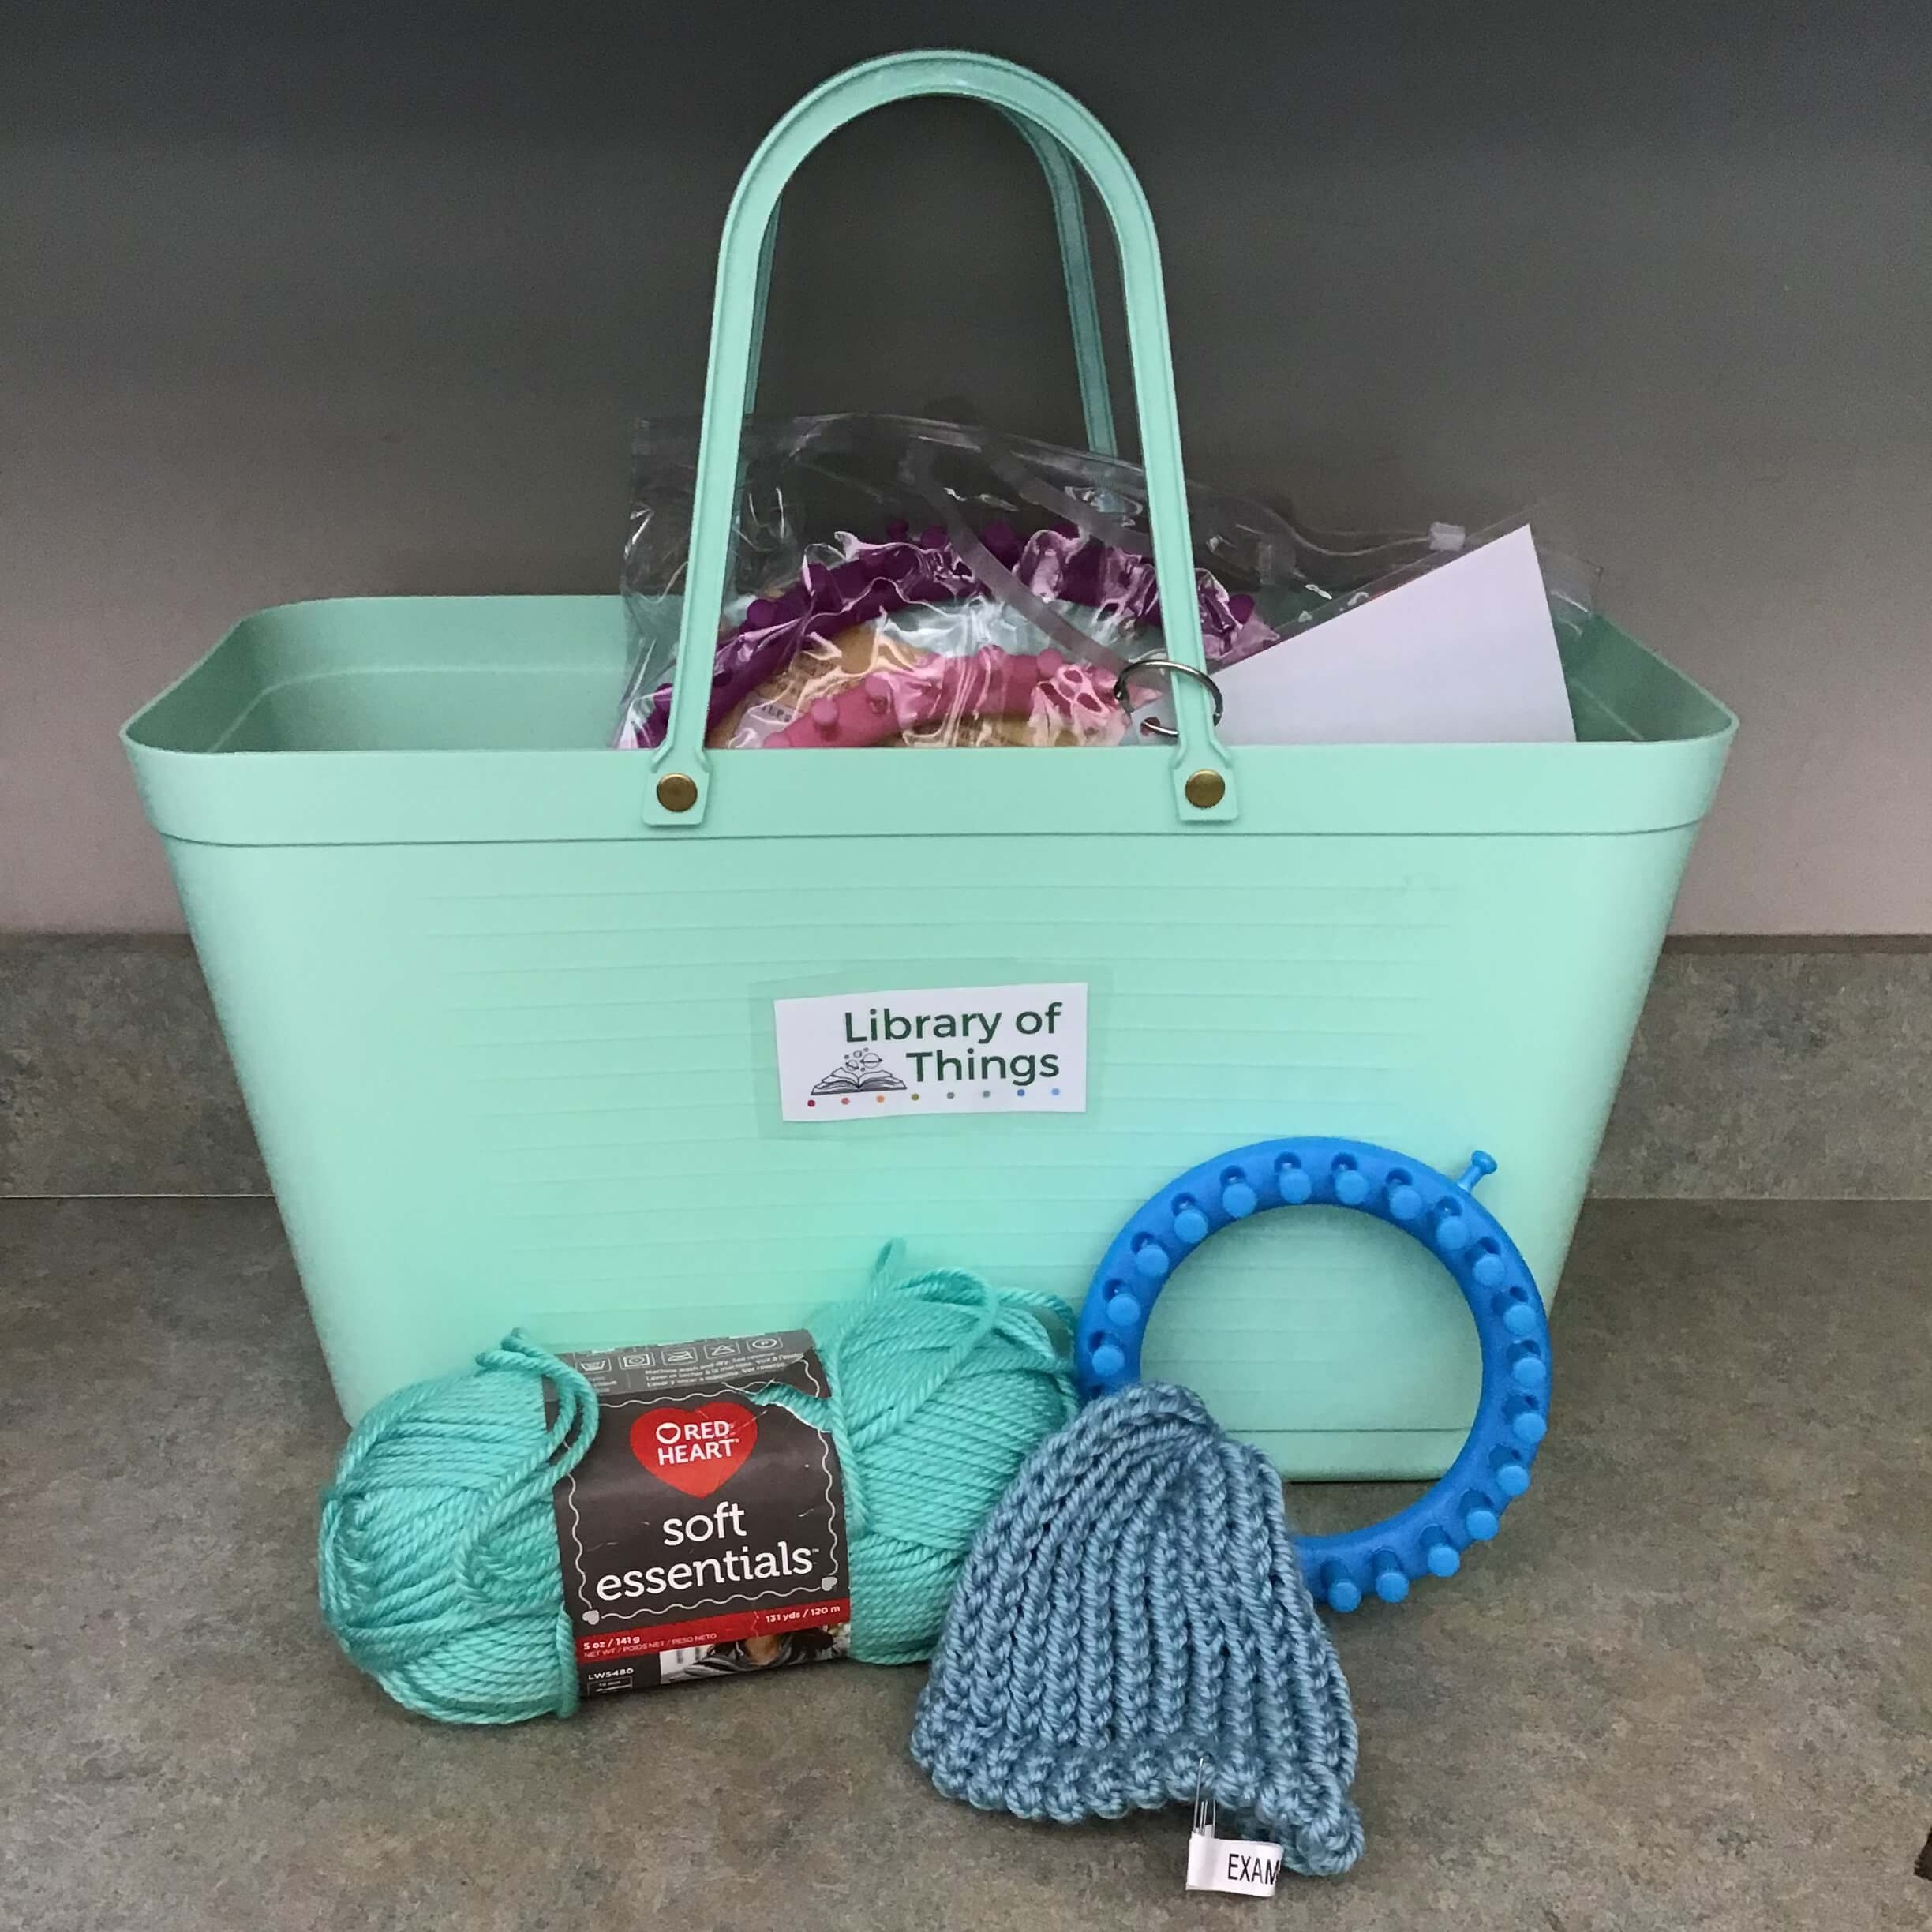 Knitting kit - Knitting LoomsYarnDonate to St. Barnabas